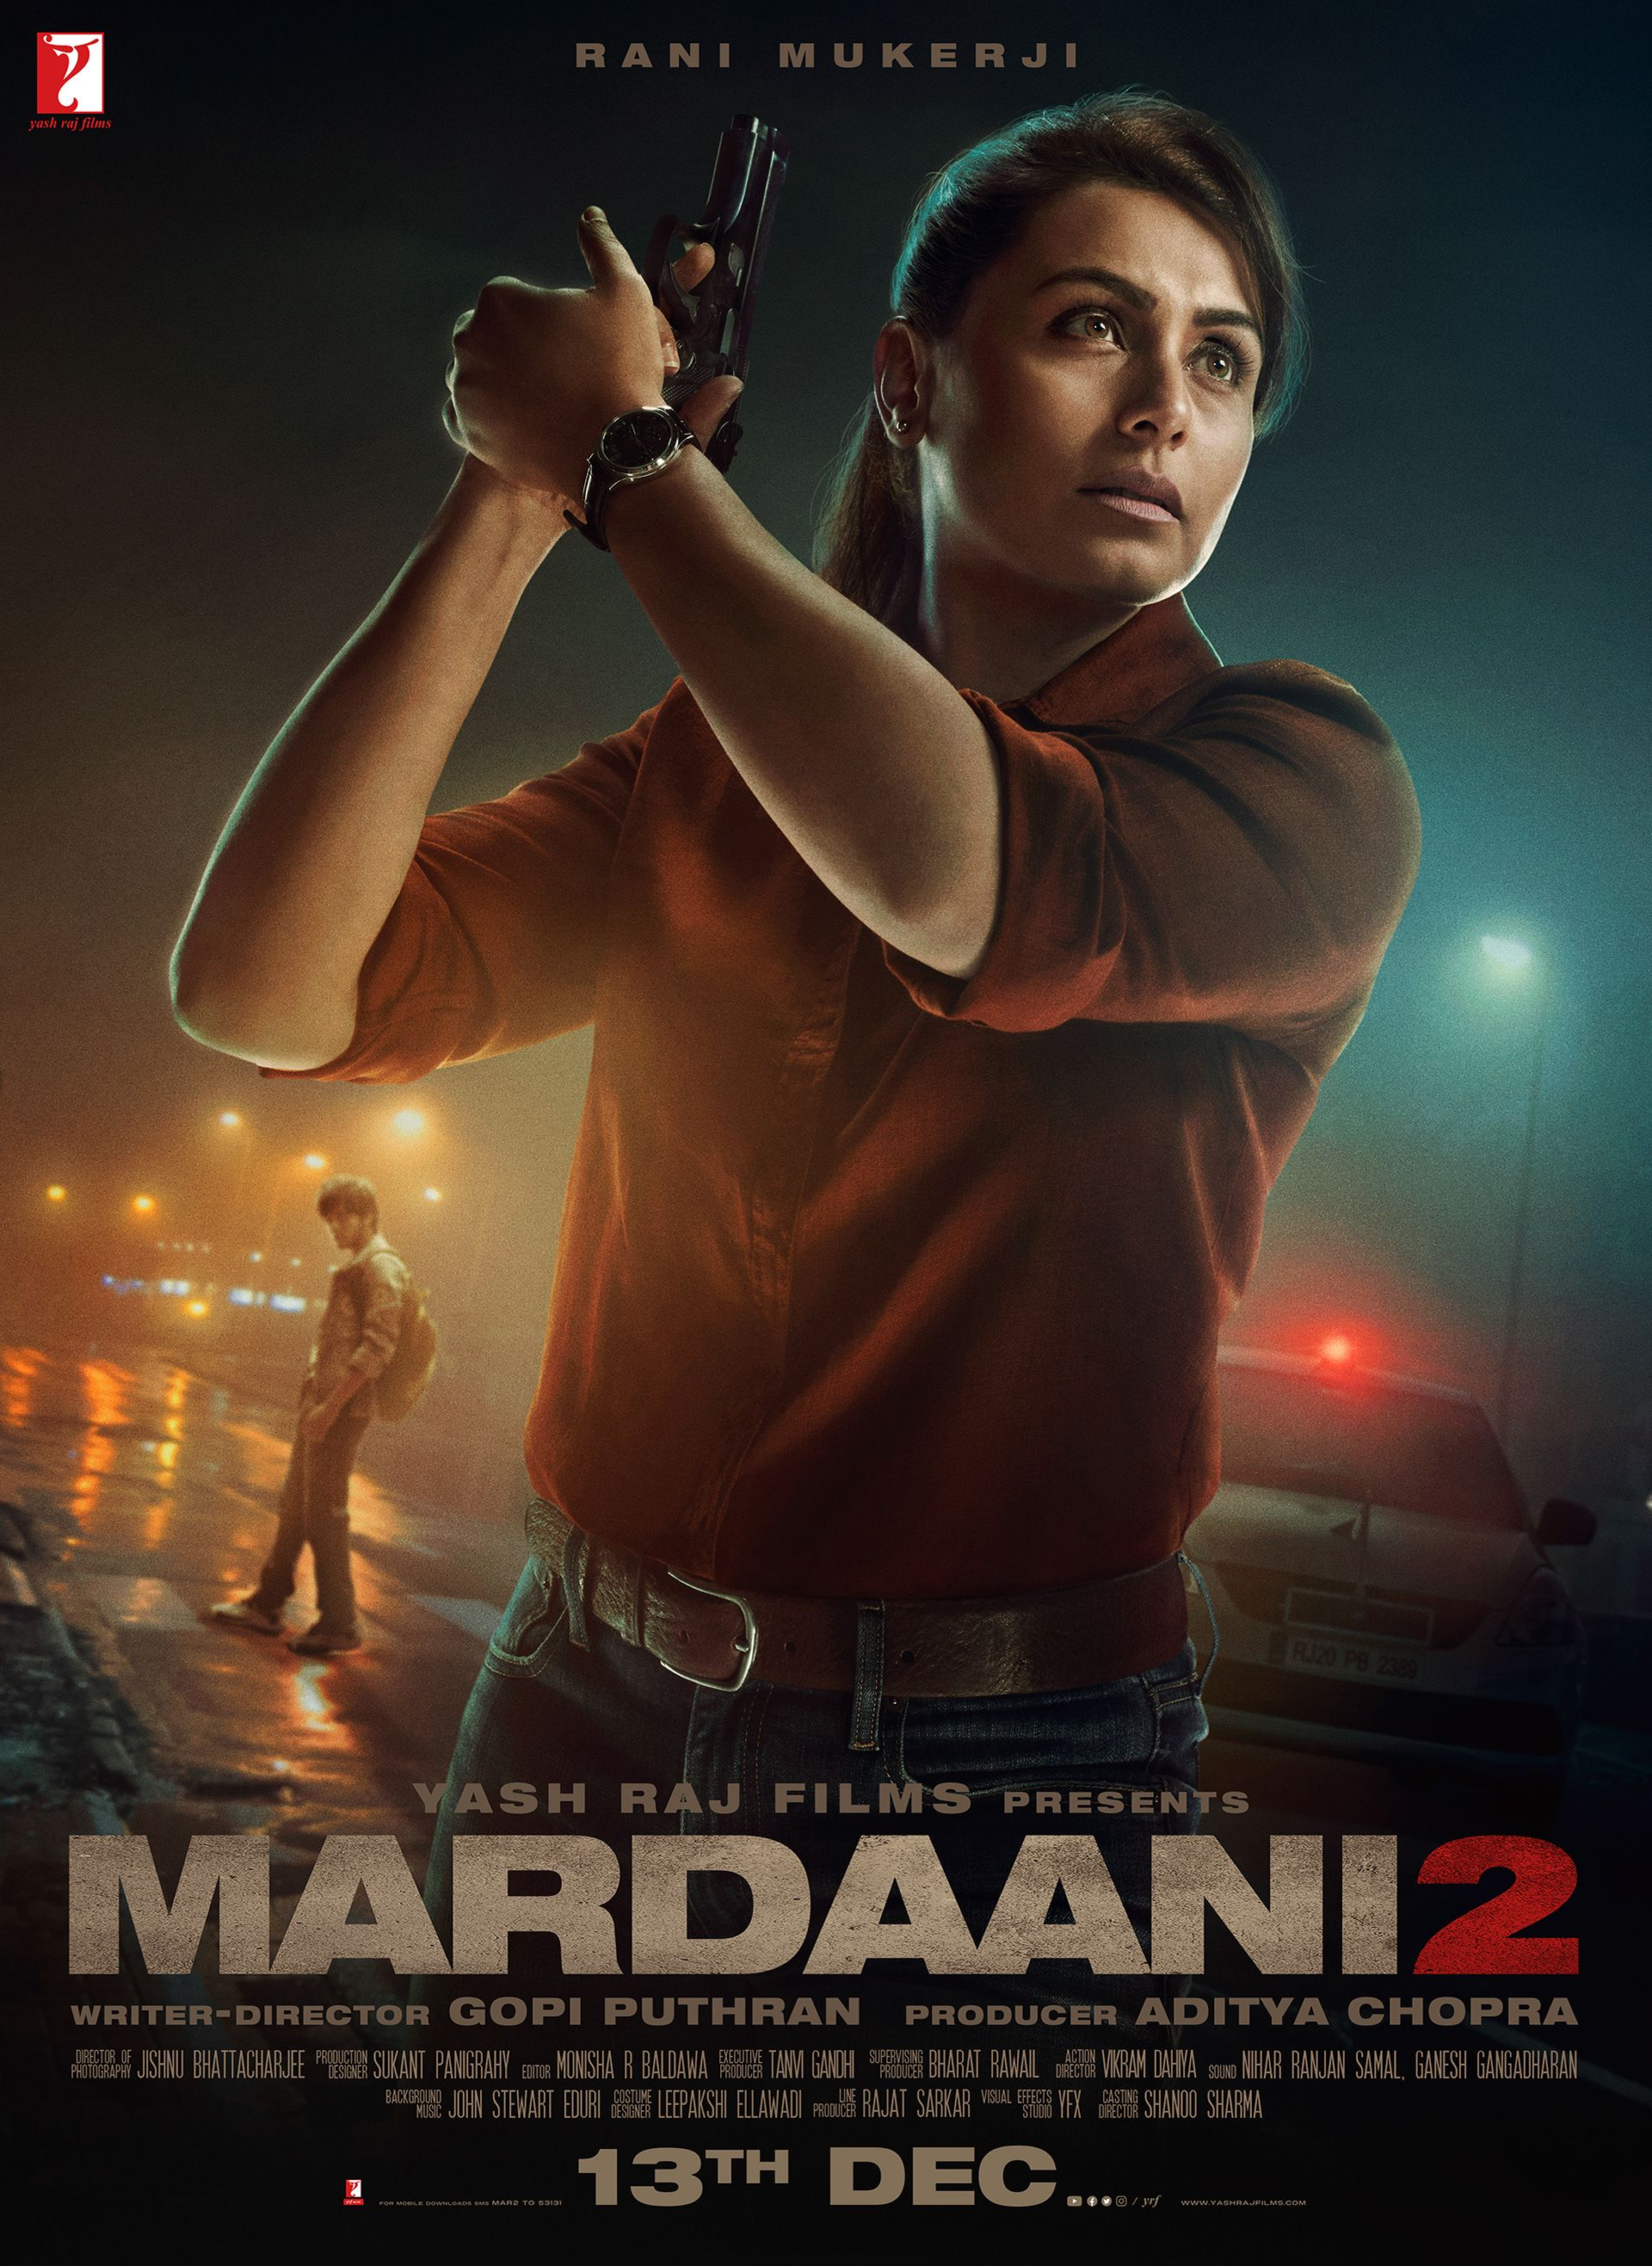 Mardaani 2 Film Poster On Behance